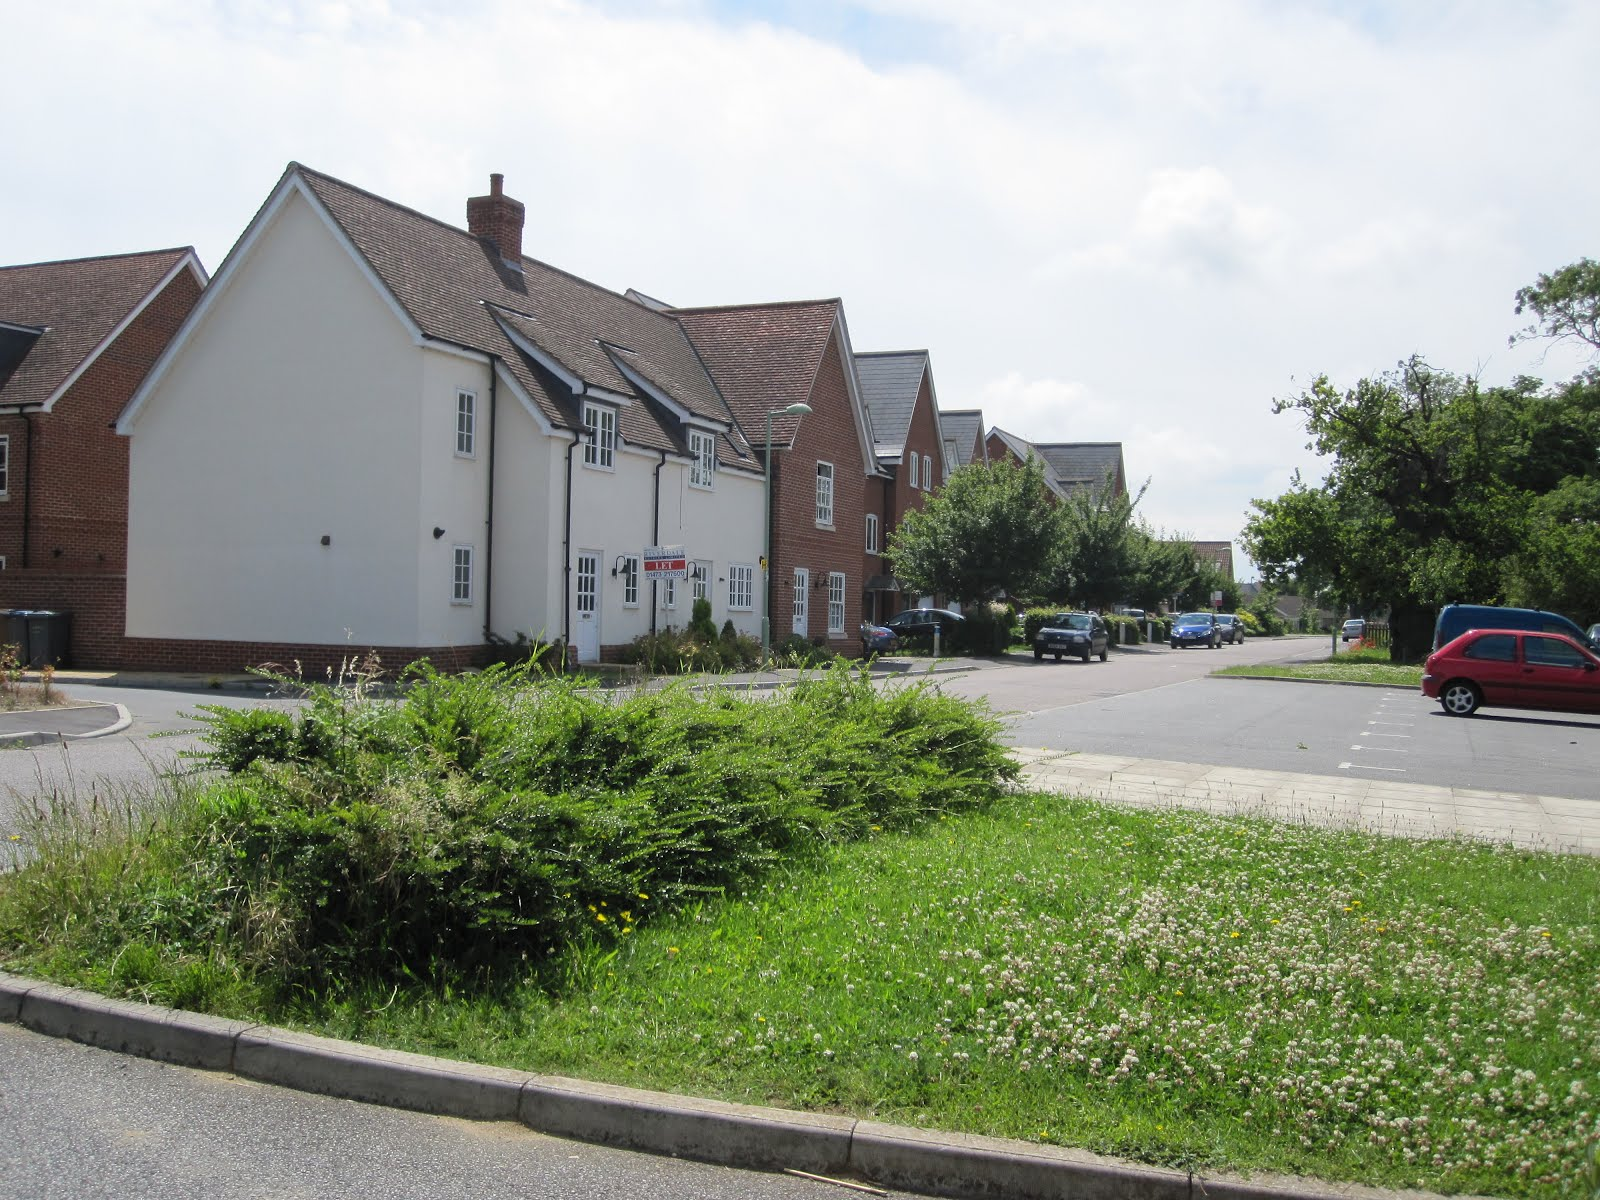 rowdy in raf bentwaters one of the streets in rendelsham village which used to be the domestic side of raf bentwaters all the old base housing is now in use as brit housing too